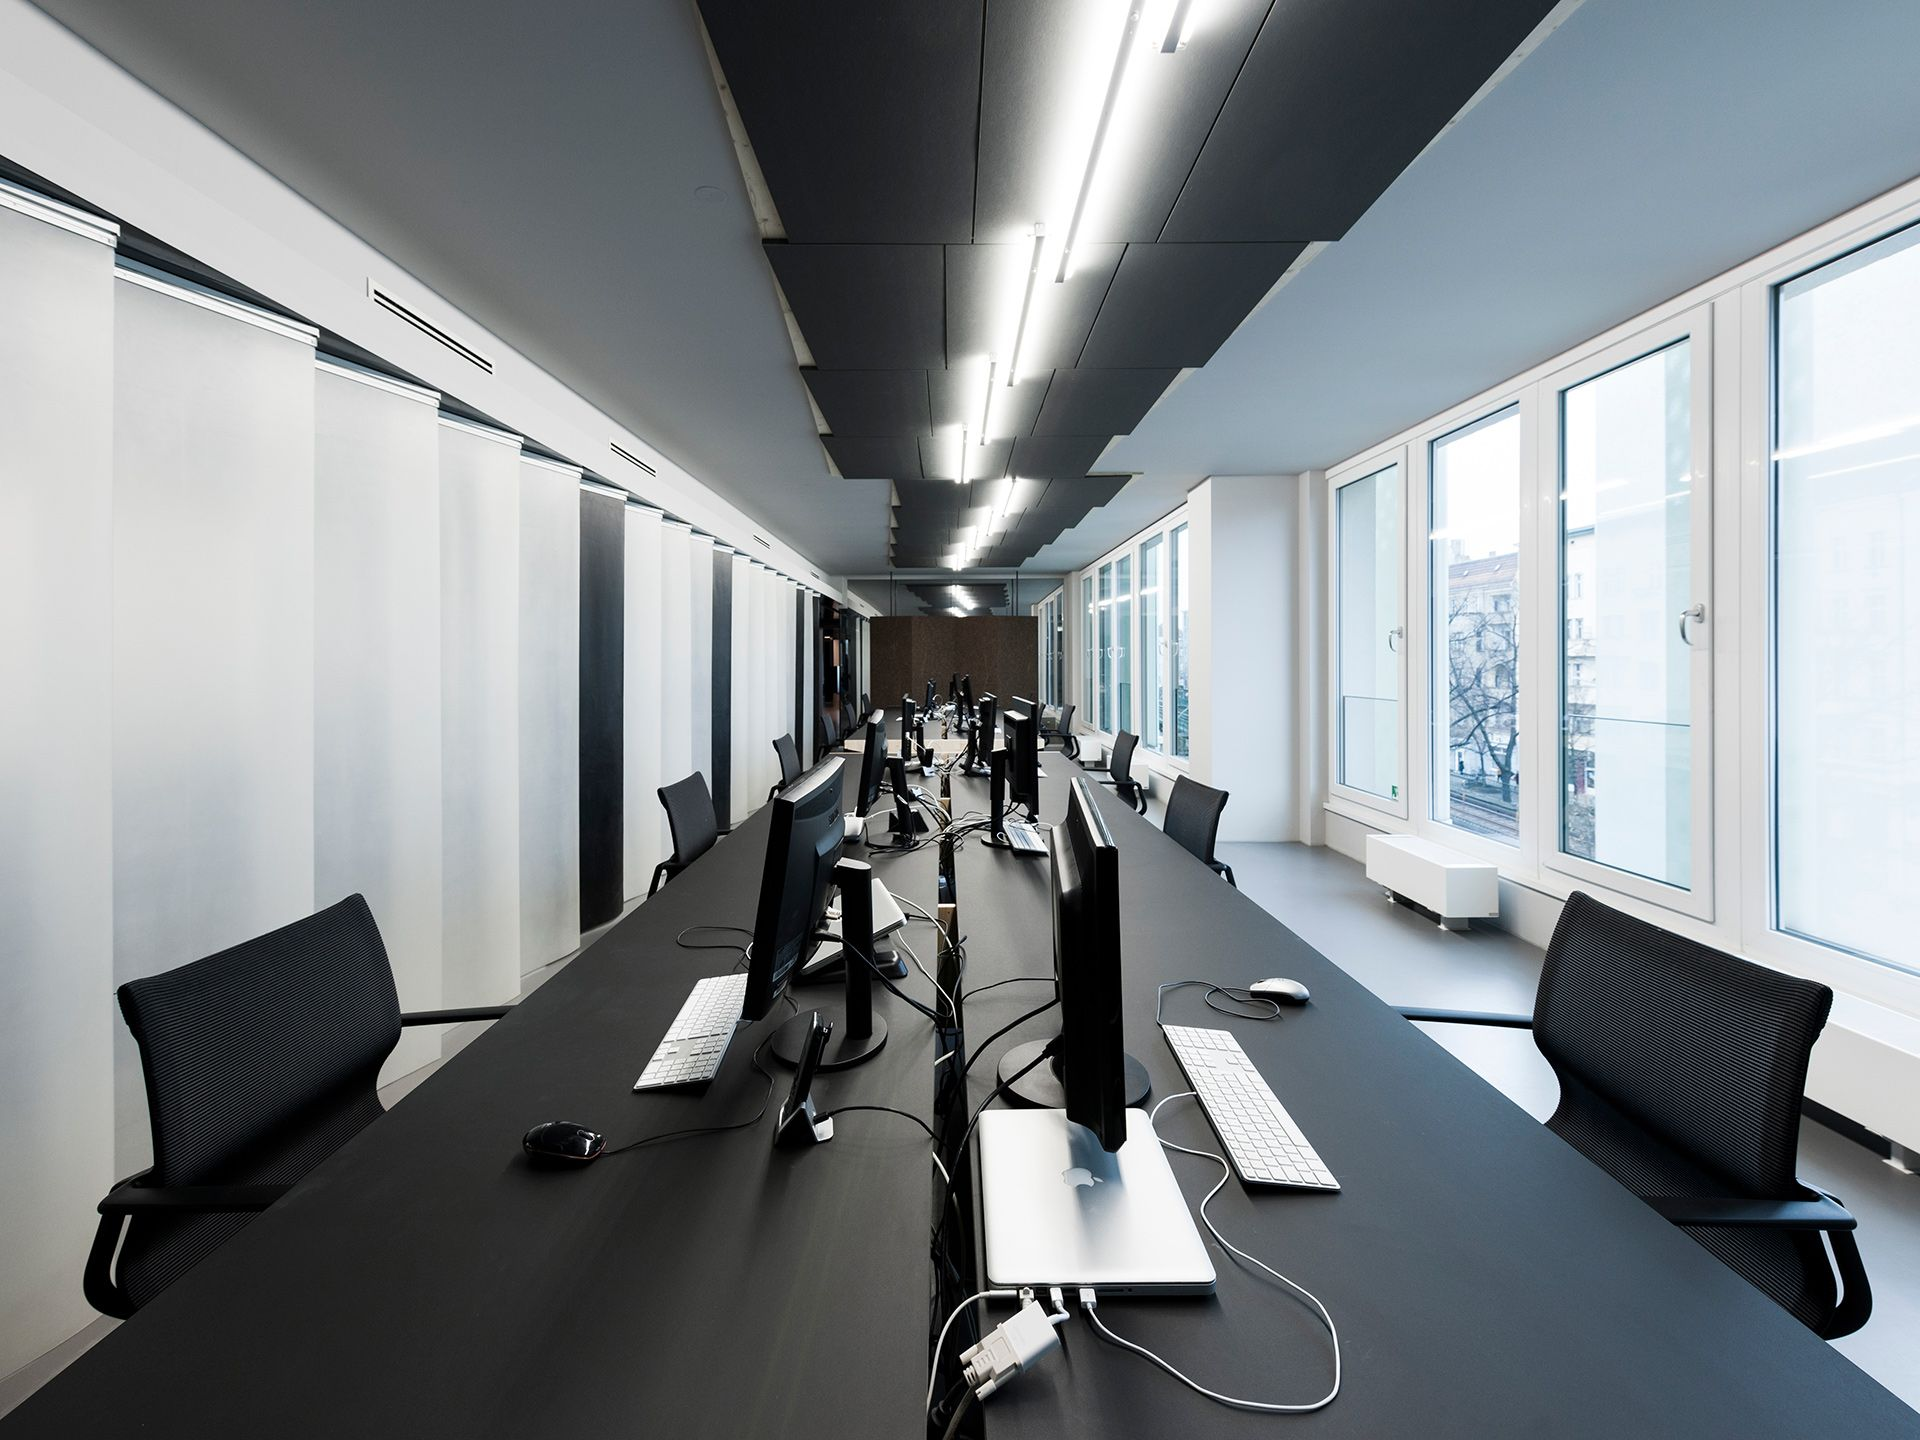 commercial office design office space. Ceiling Design, Office Designs, Workplace, Spaces, Auditorium, Berlin, Offices, Ceilings, Commercial Design Space